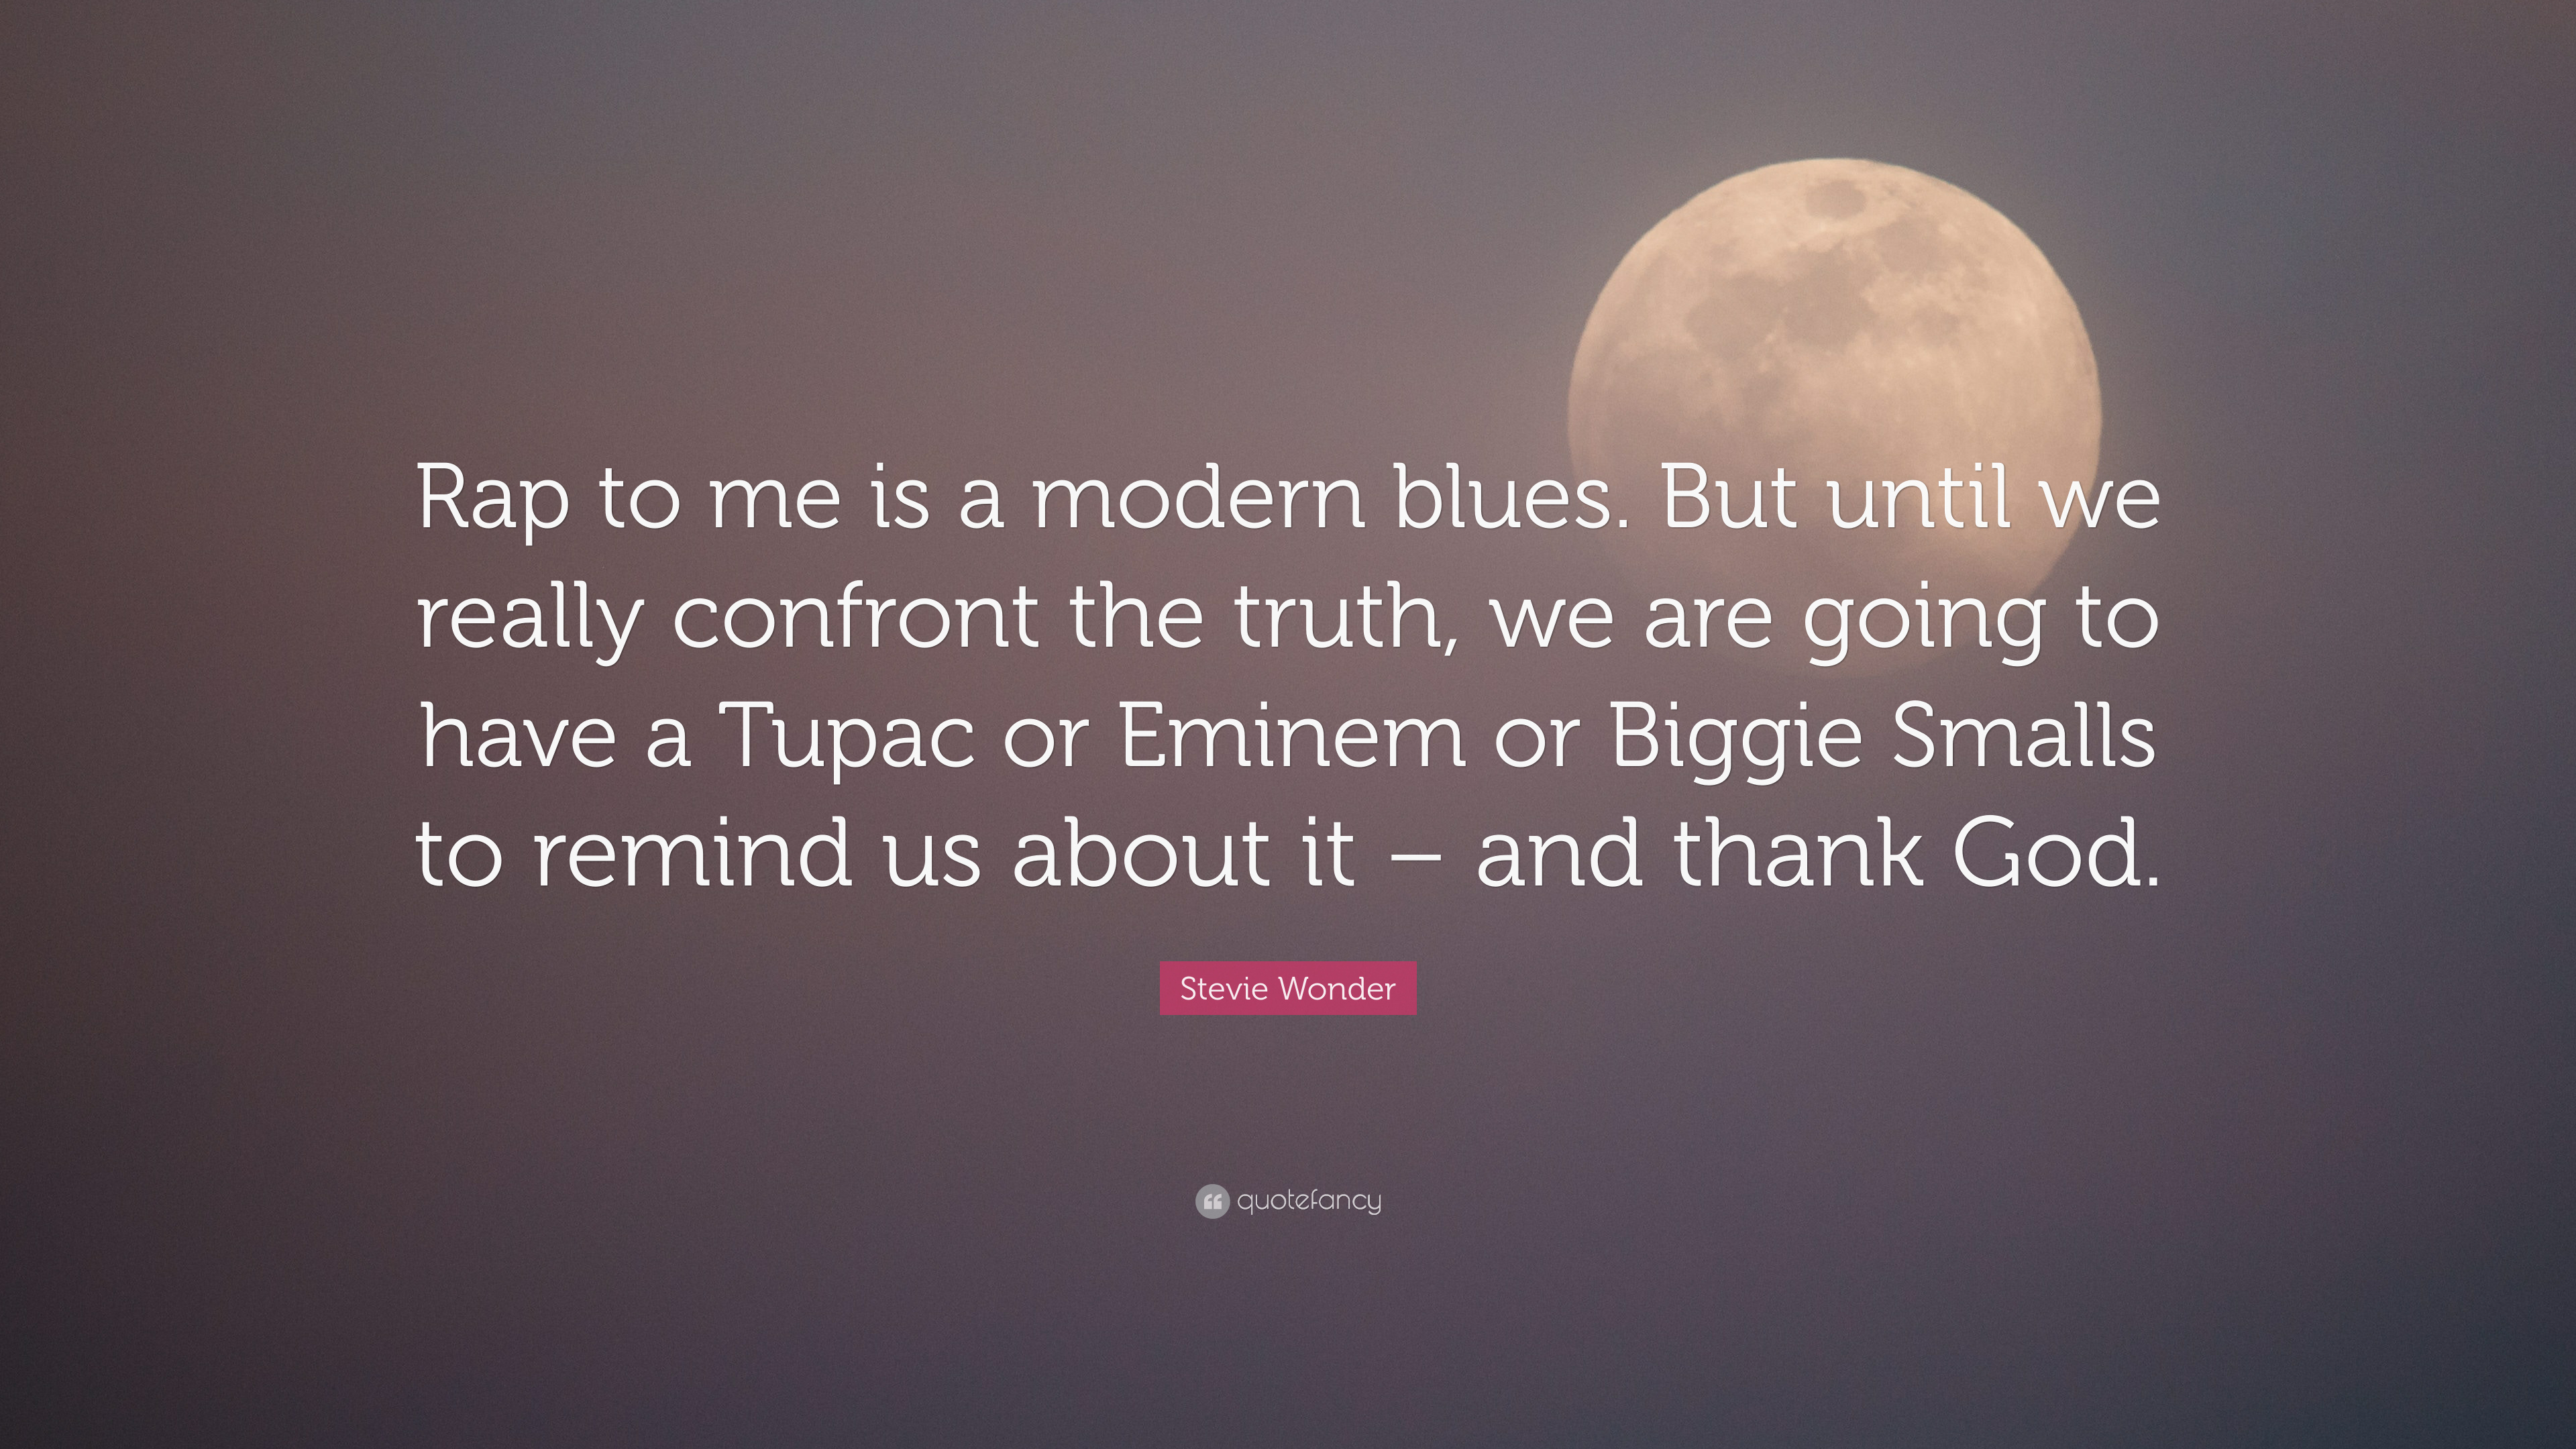 7 Wallpapers Stevie Wonder Quote Rap To Me Is A Modern Blues But Until We